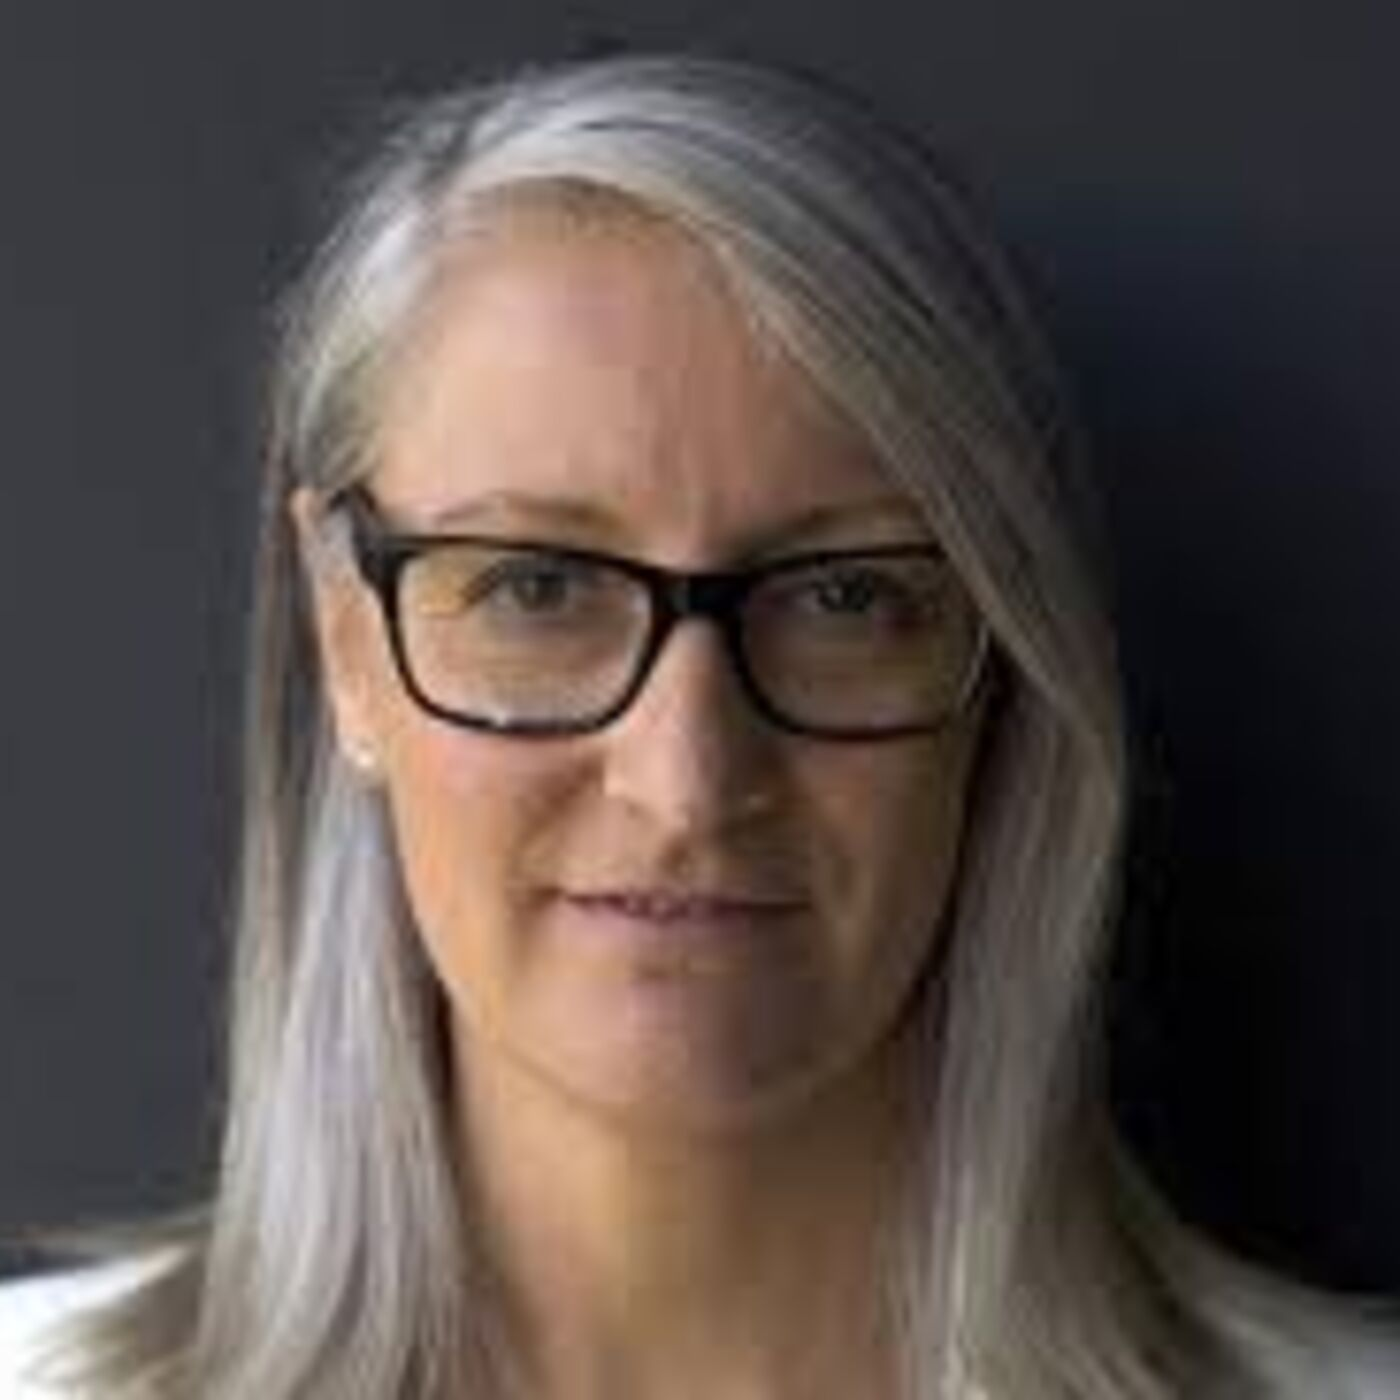 Anne Miles - Unique multi-talented and award winning marketing professional whose working hard to stop stereotyping in business